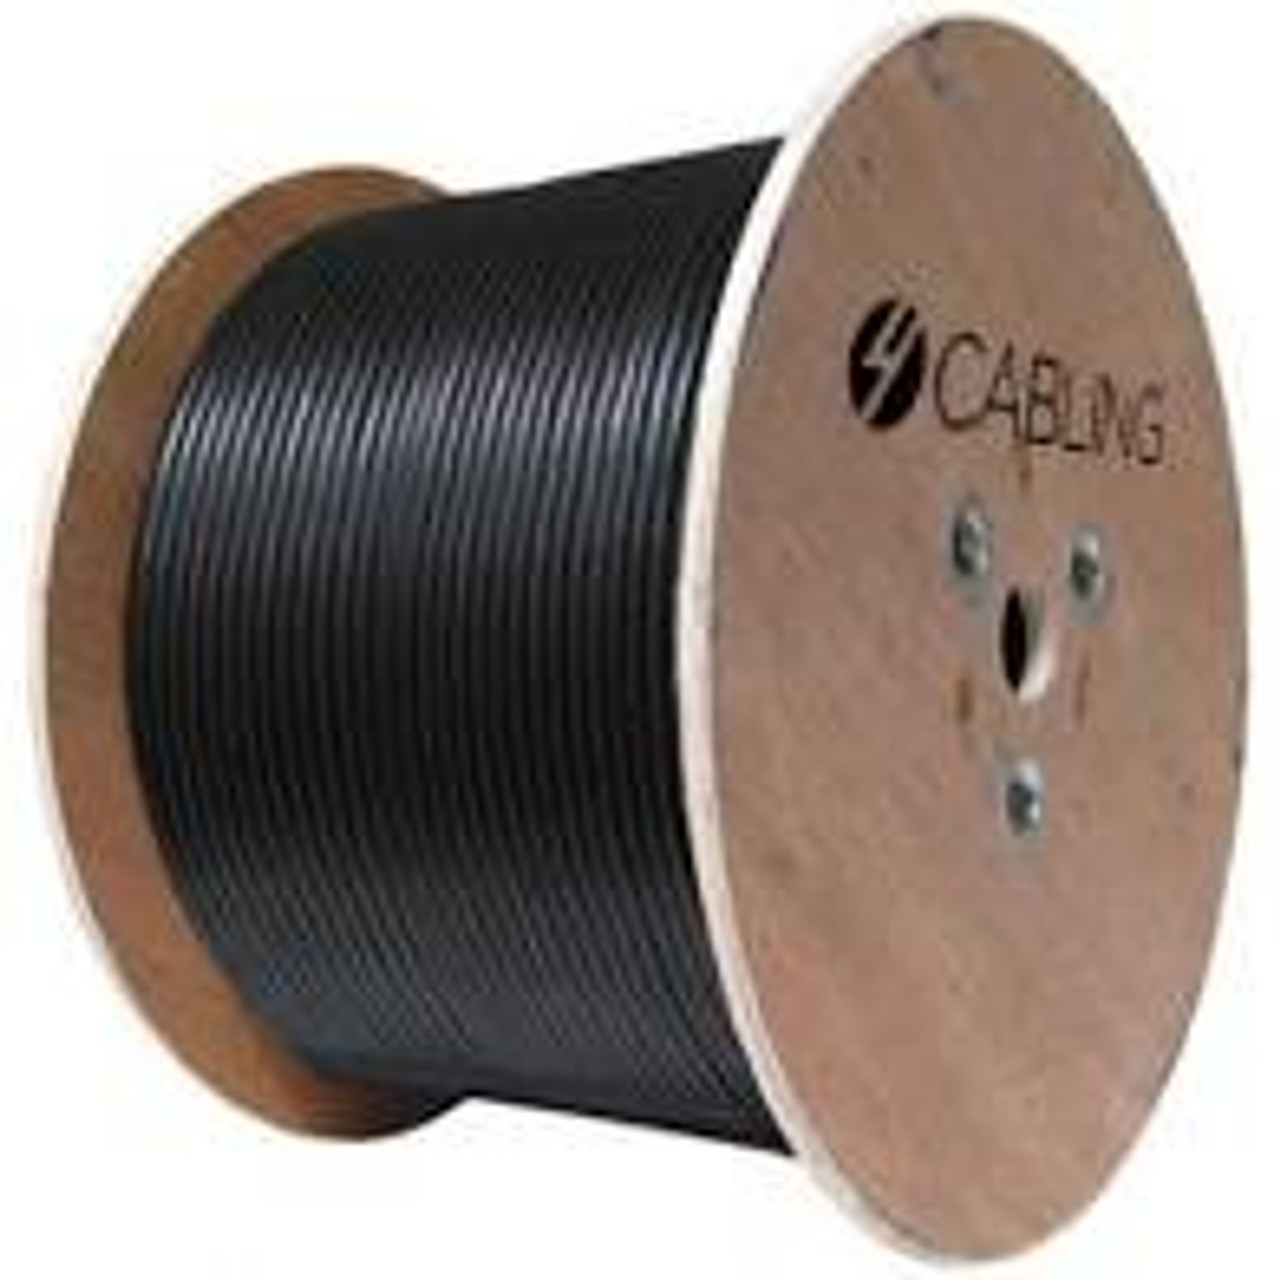 4Cabling Cat 6 UTP LAN Outdoor UV Stabilised Cable - 305m Roll on a Reel: Black